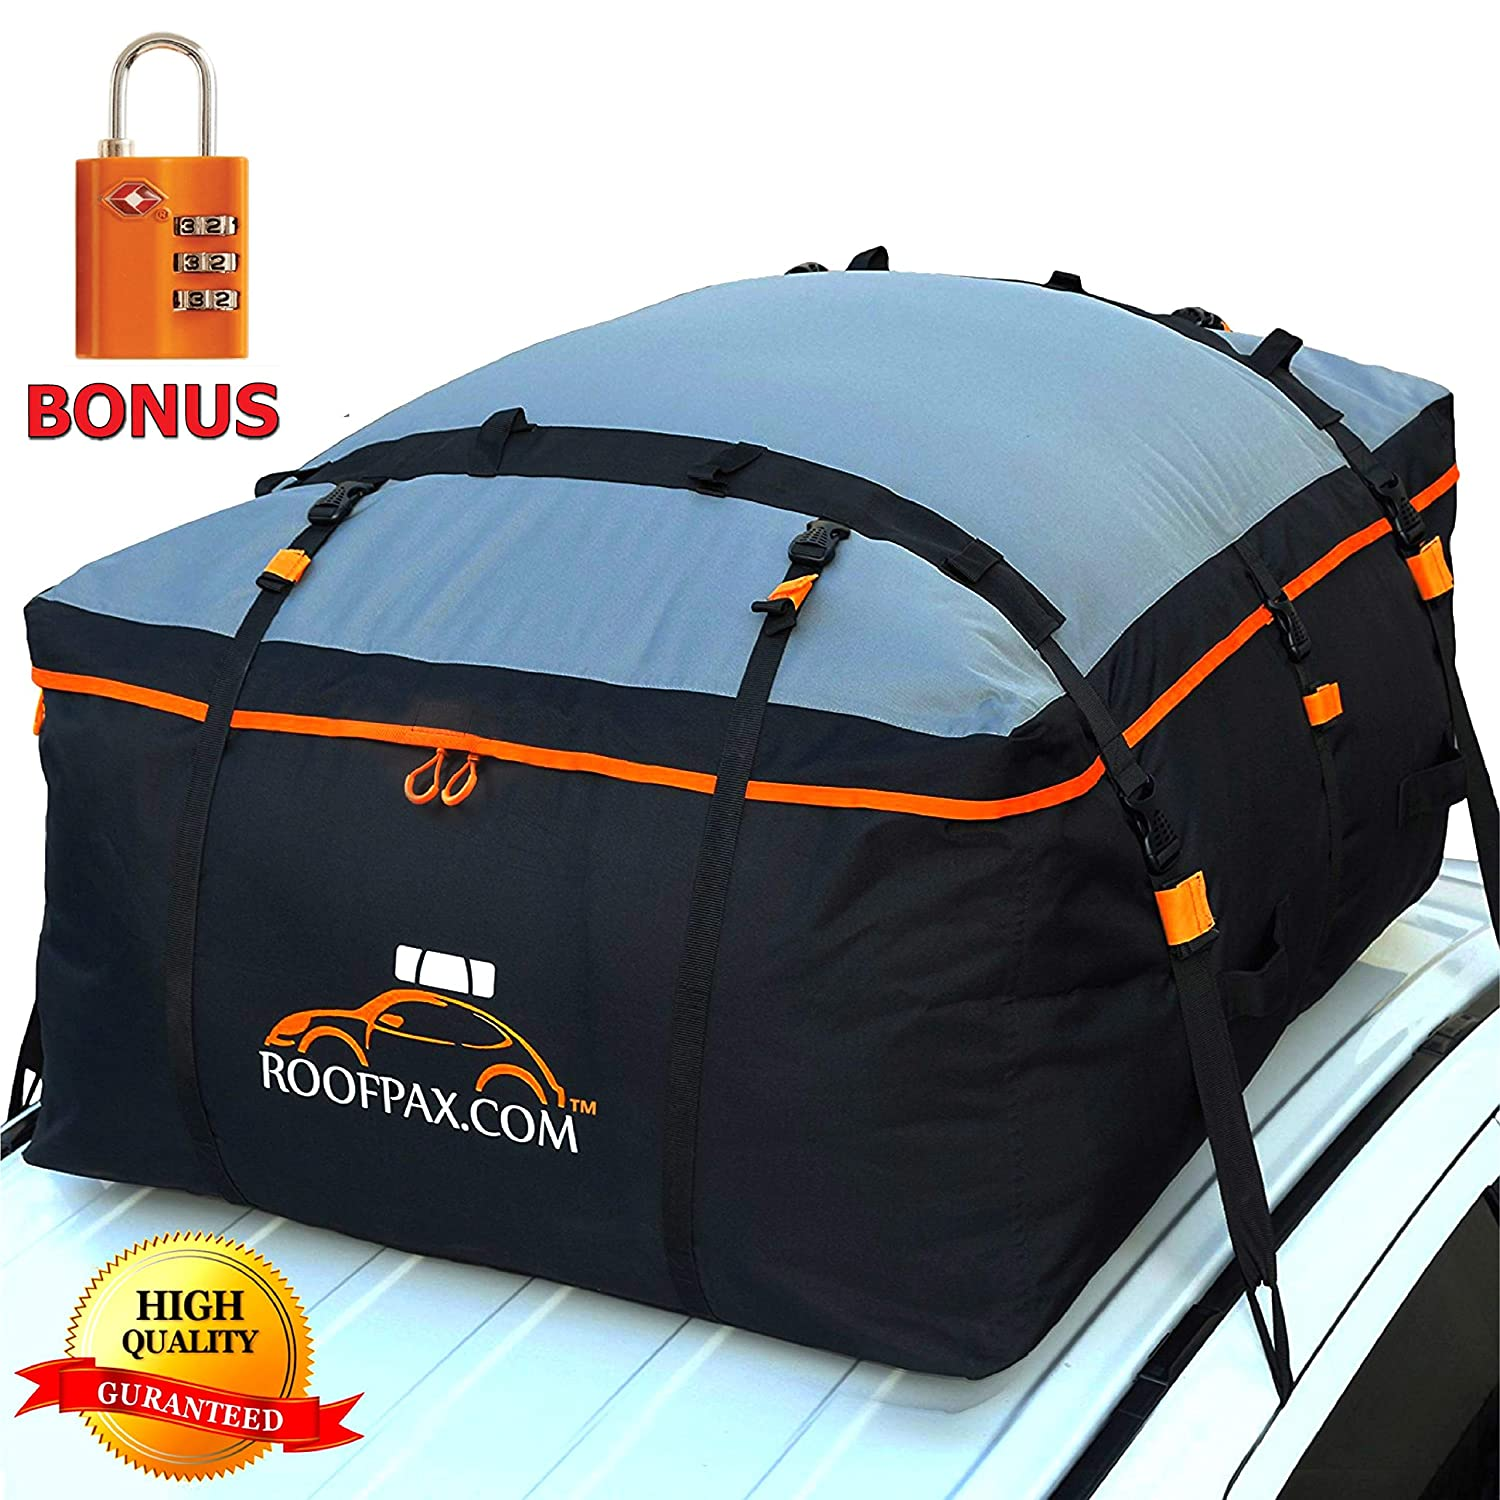 ROOFPAX Car Roof Bag & Rooftop Cargo Carrier - picture